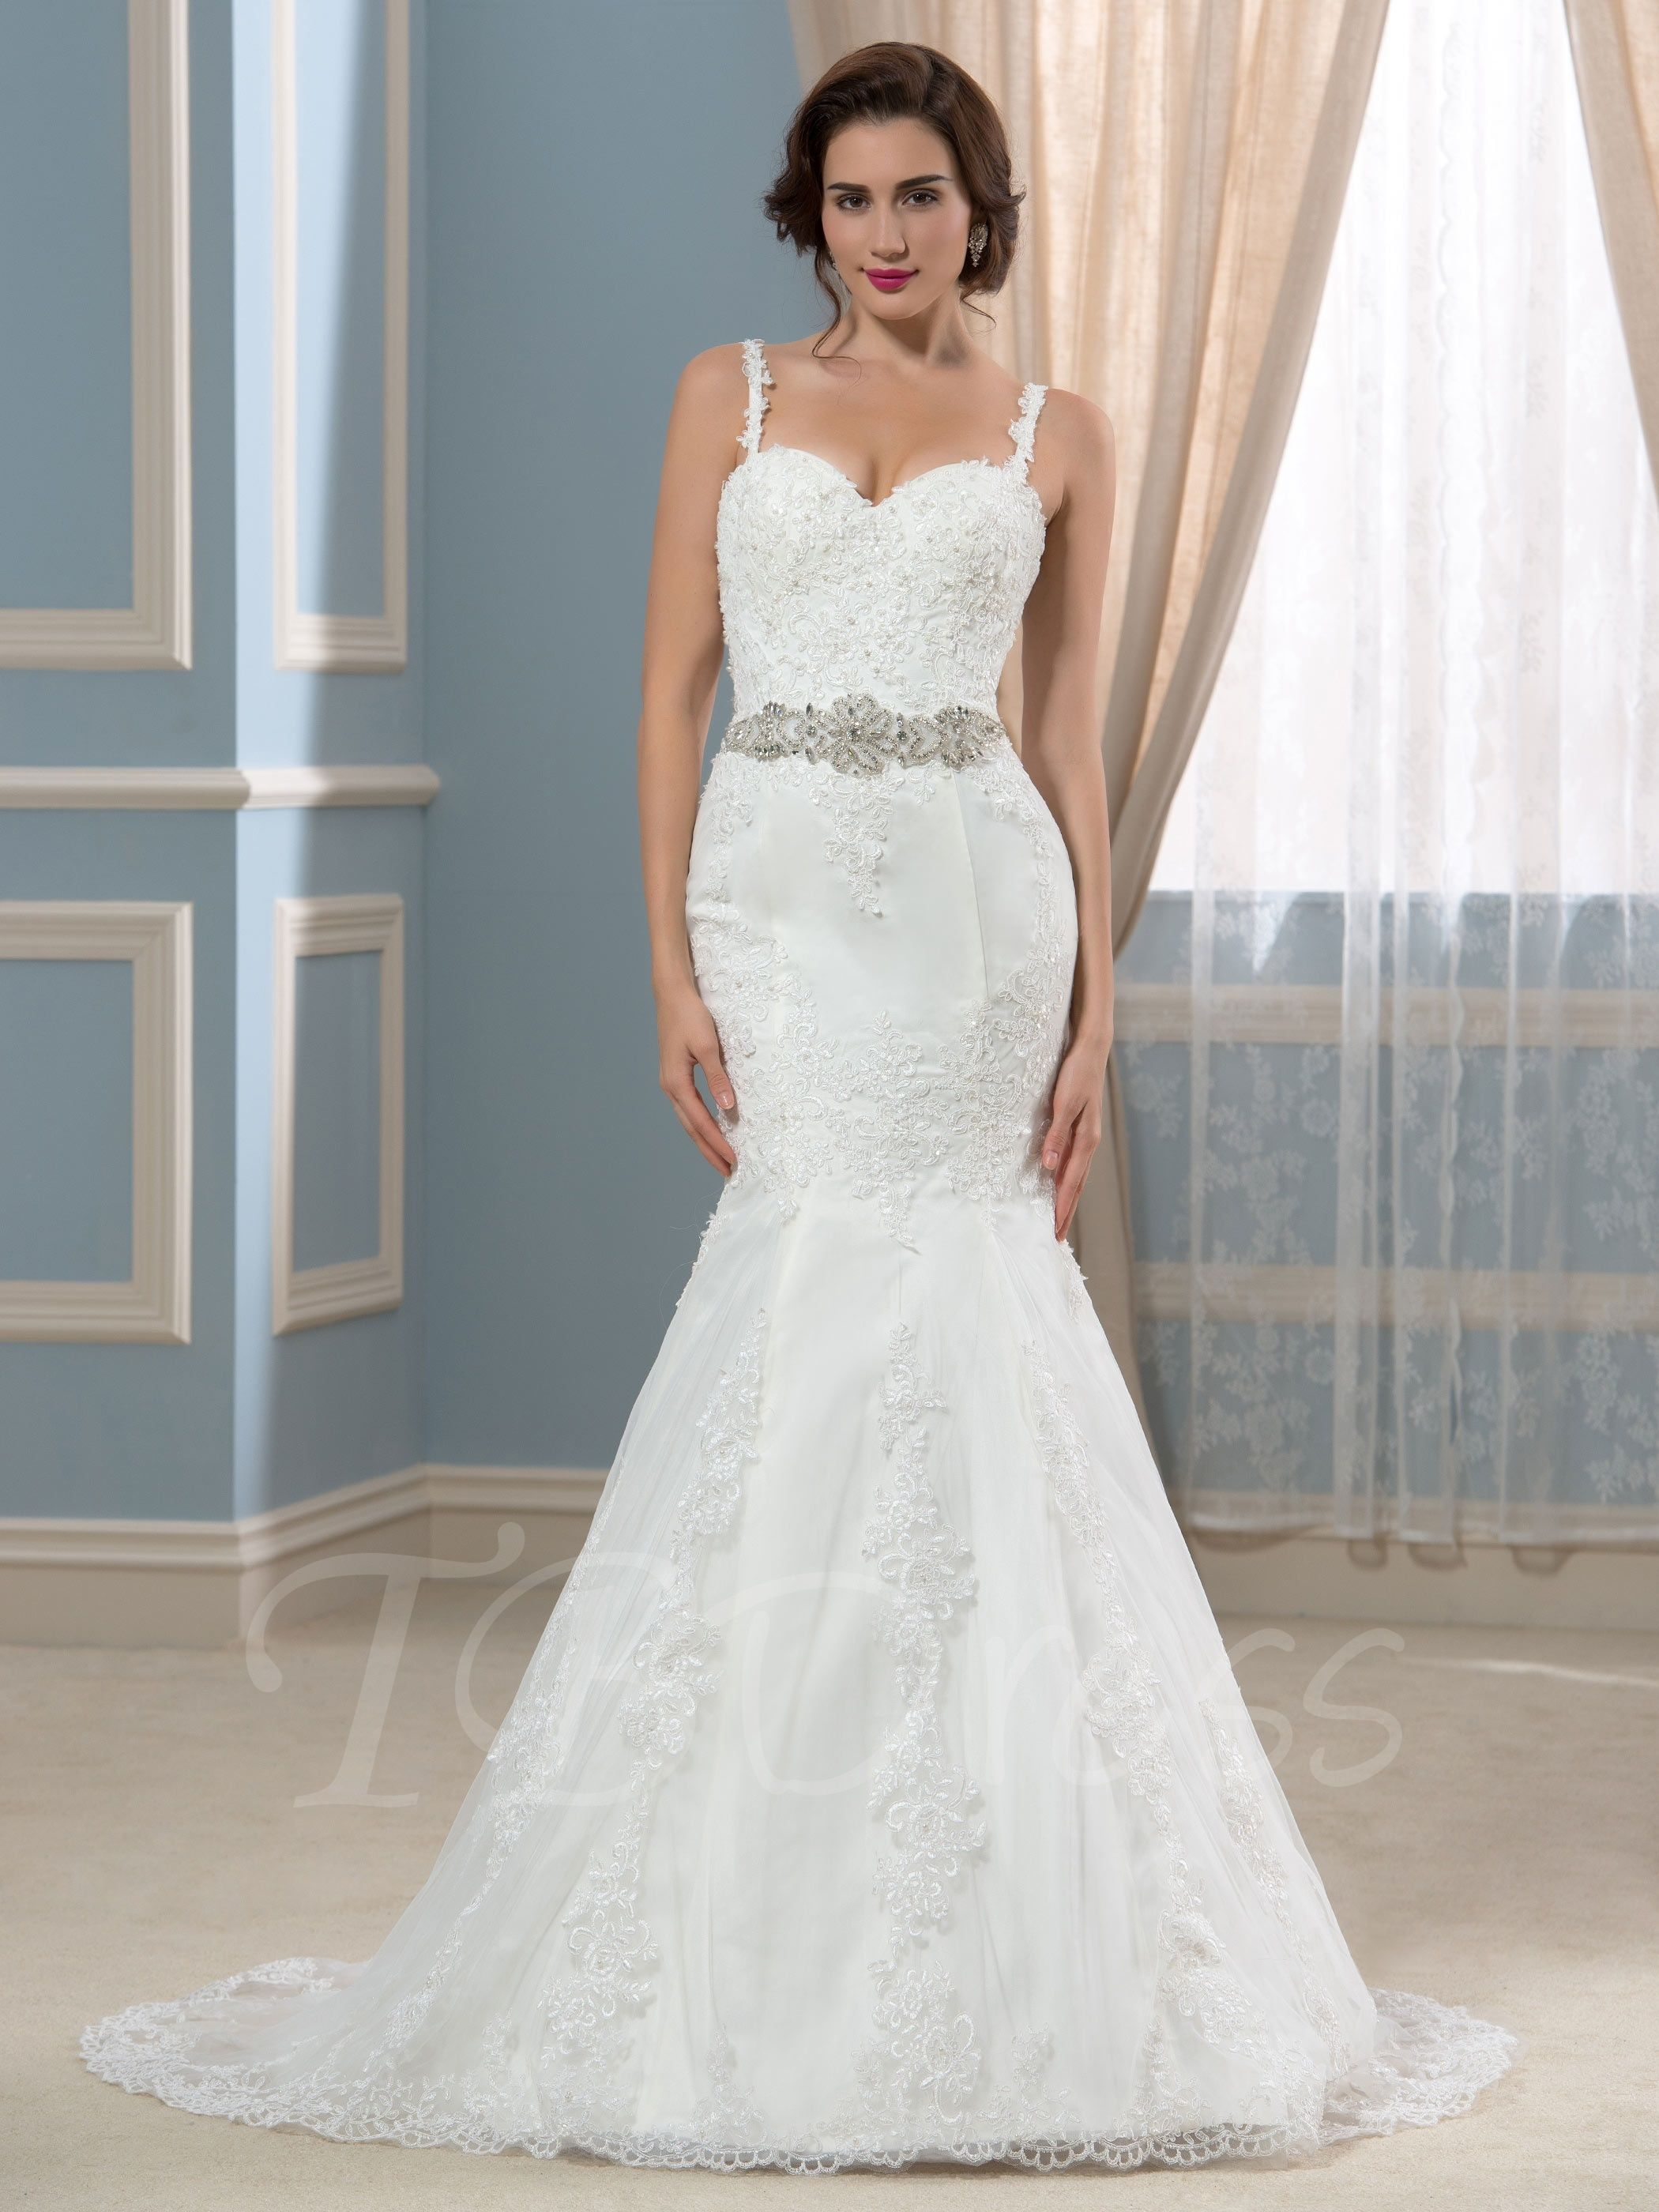 Tbdress.com offers high quality Spaghetti Straps Beaded Lace Court ...